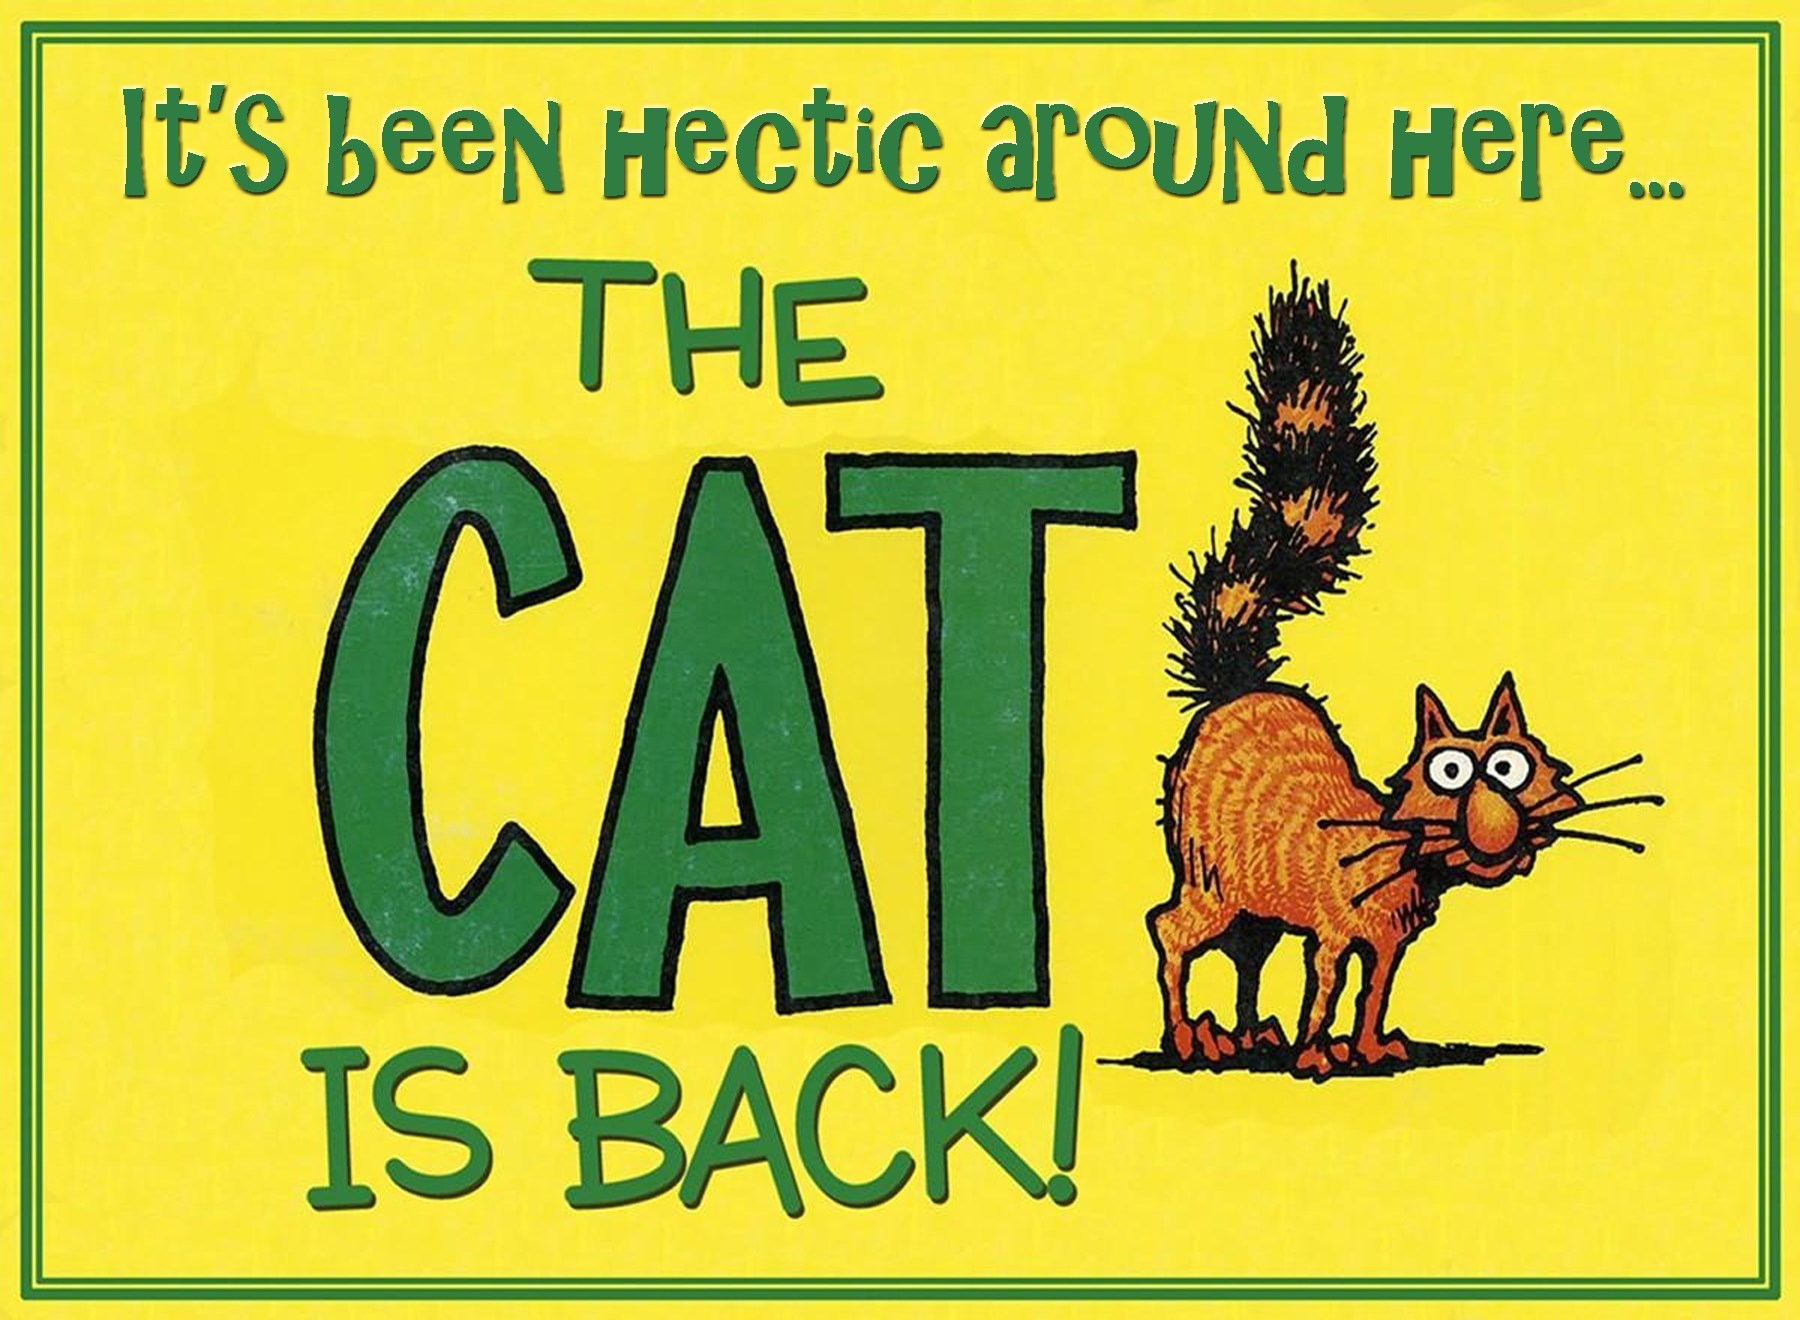 00 cat's back hectic few days 020915